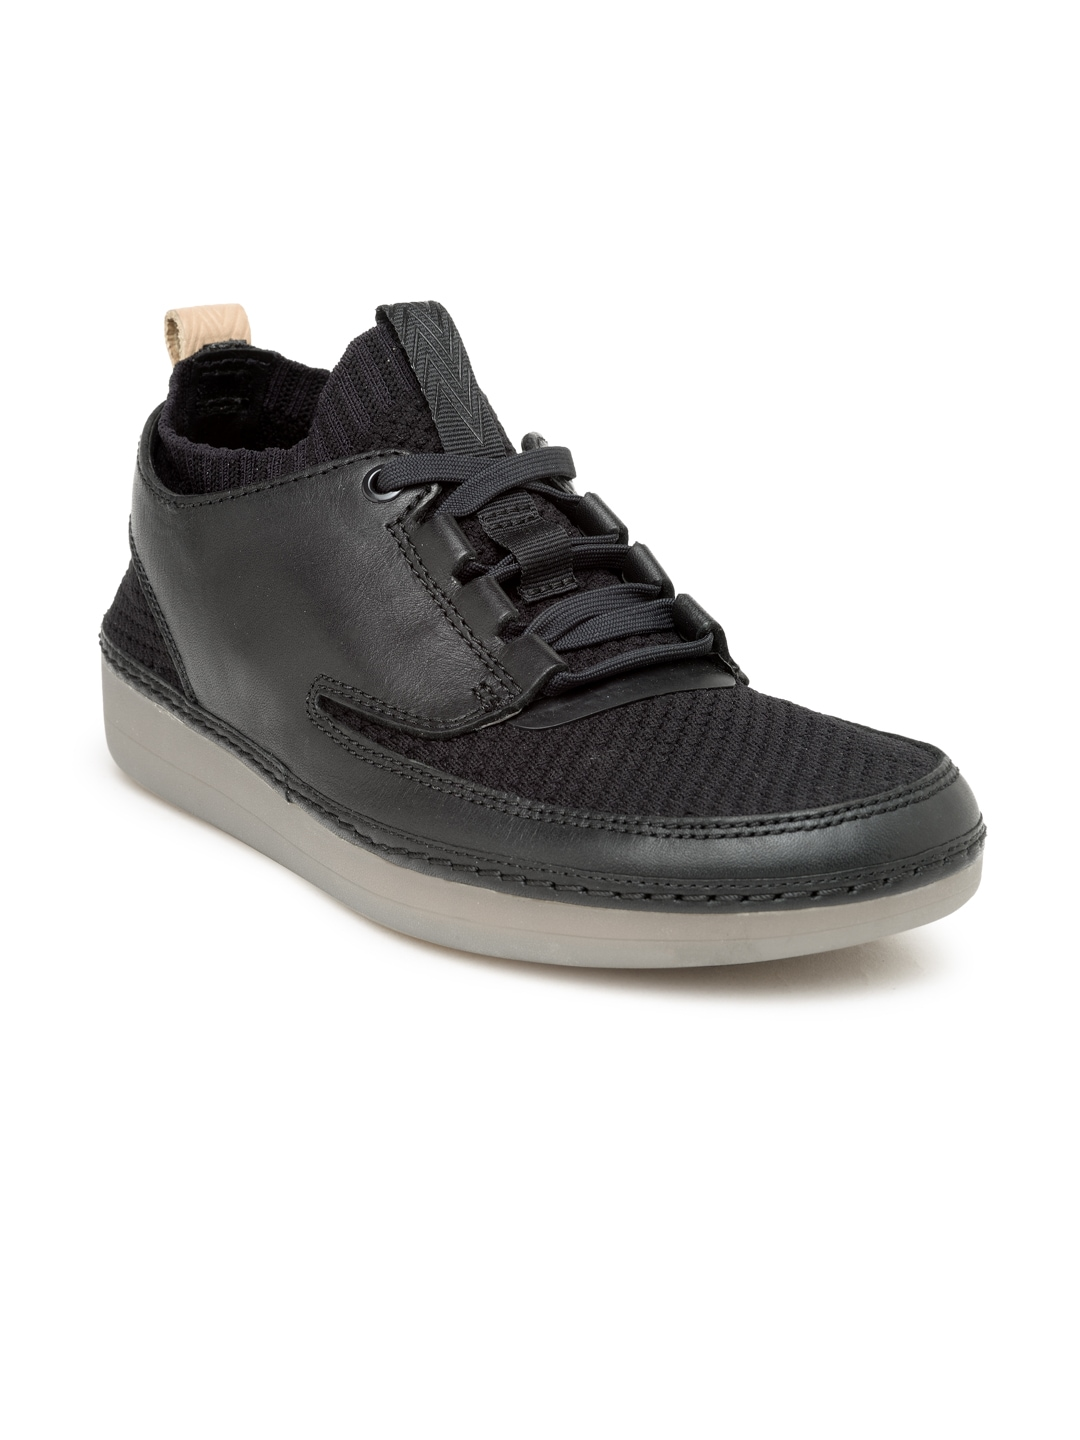 Clarks carries a full range of items suited for any occasion, ranging from leisure wear to dress shoes. Their product lines for men include several notable brands, including the elegant Bostonian. Those looking for something more casual can find canvas shoes as .